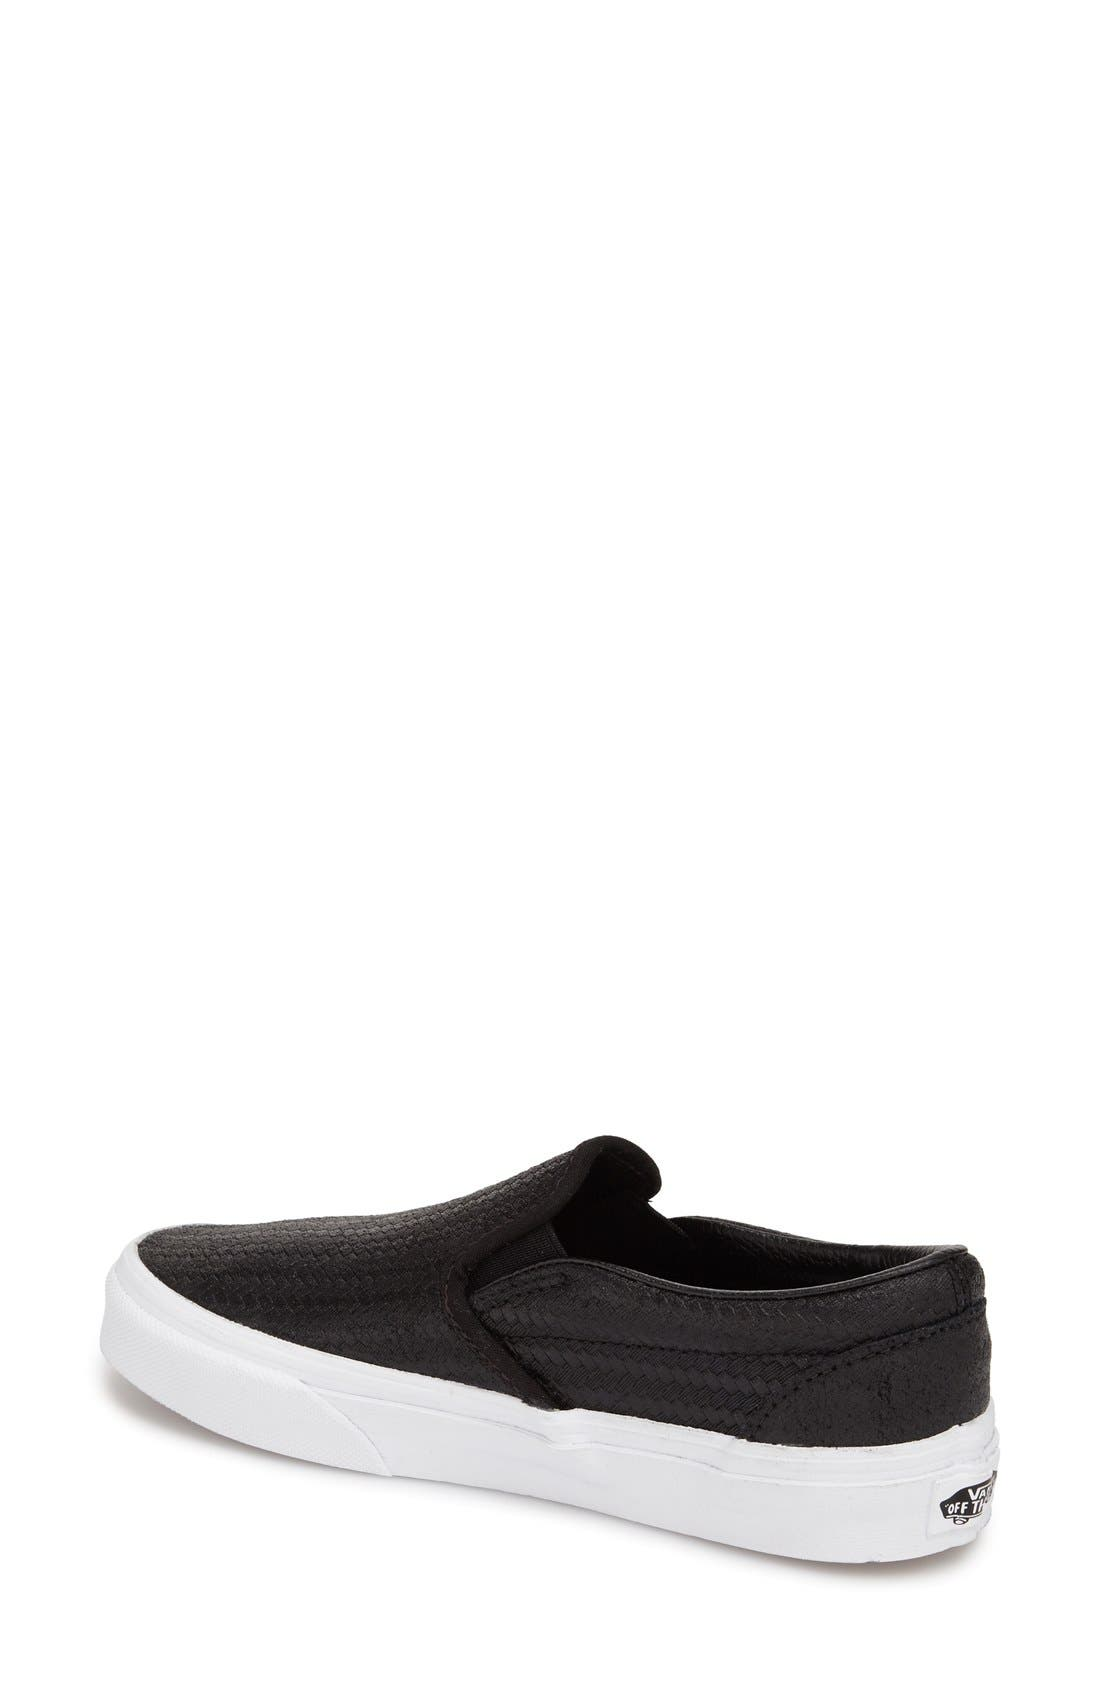 Classic Slip-On Sneaker,                             Alternate thumbnail 127, color,